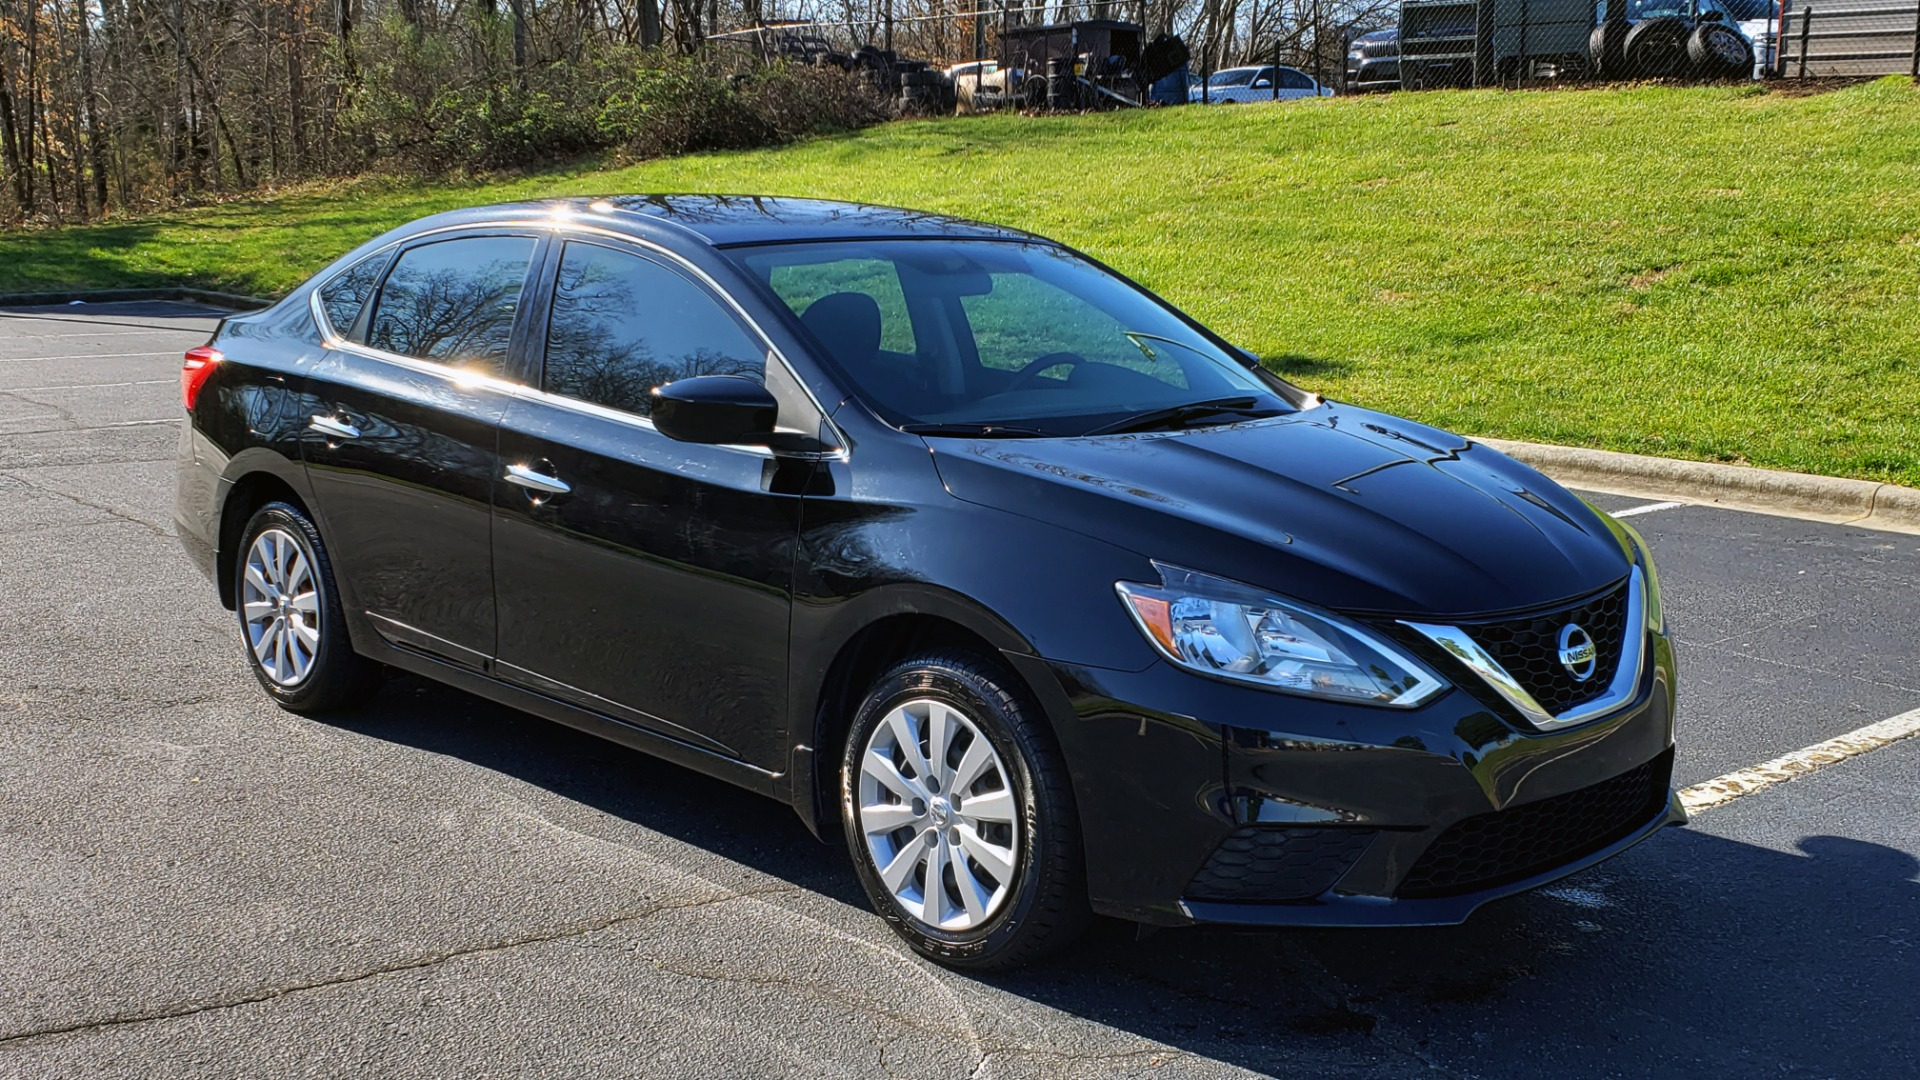 Used 2016 Nissan SENTRA S / FWD / CVT AUTO TRANS / 4-CYL / VERY CLEAN! for sale Sold at Formula Imports in Charlotte NC 28227 4